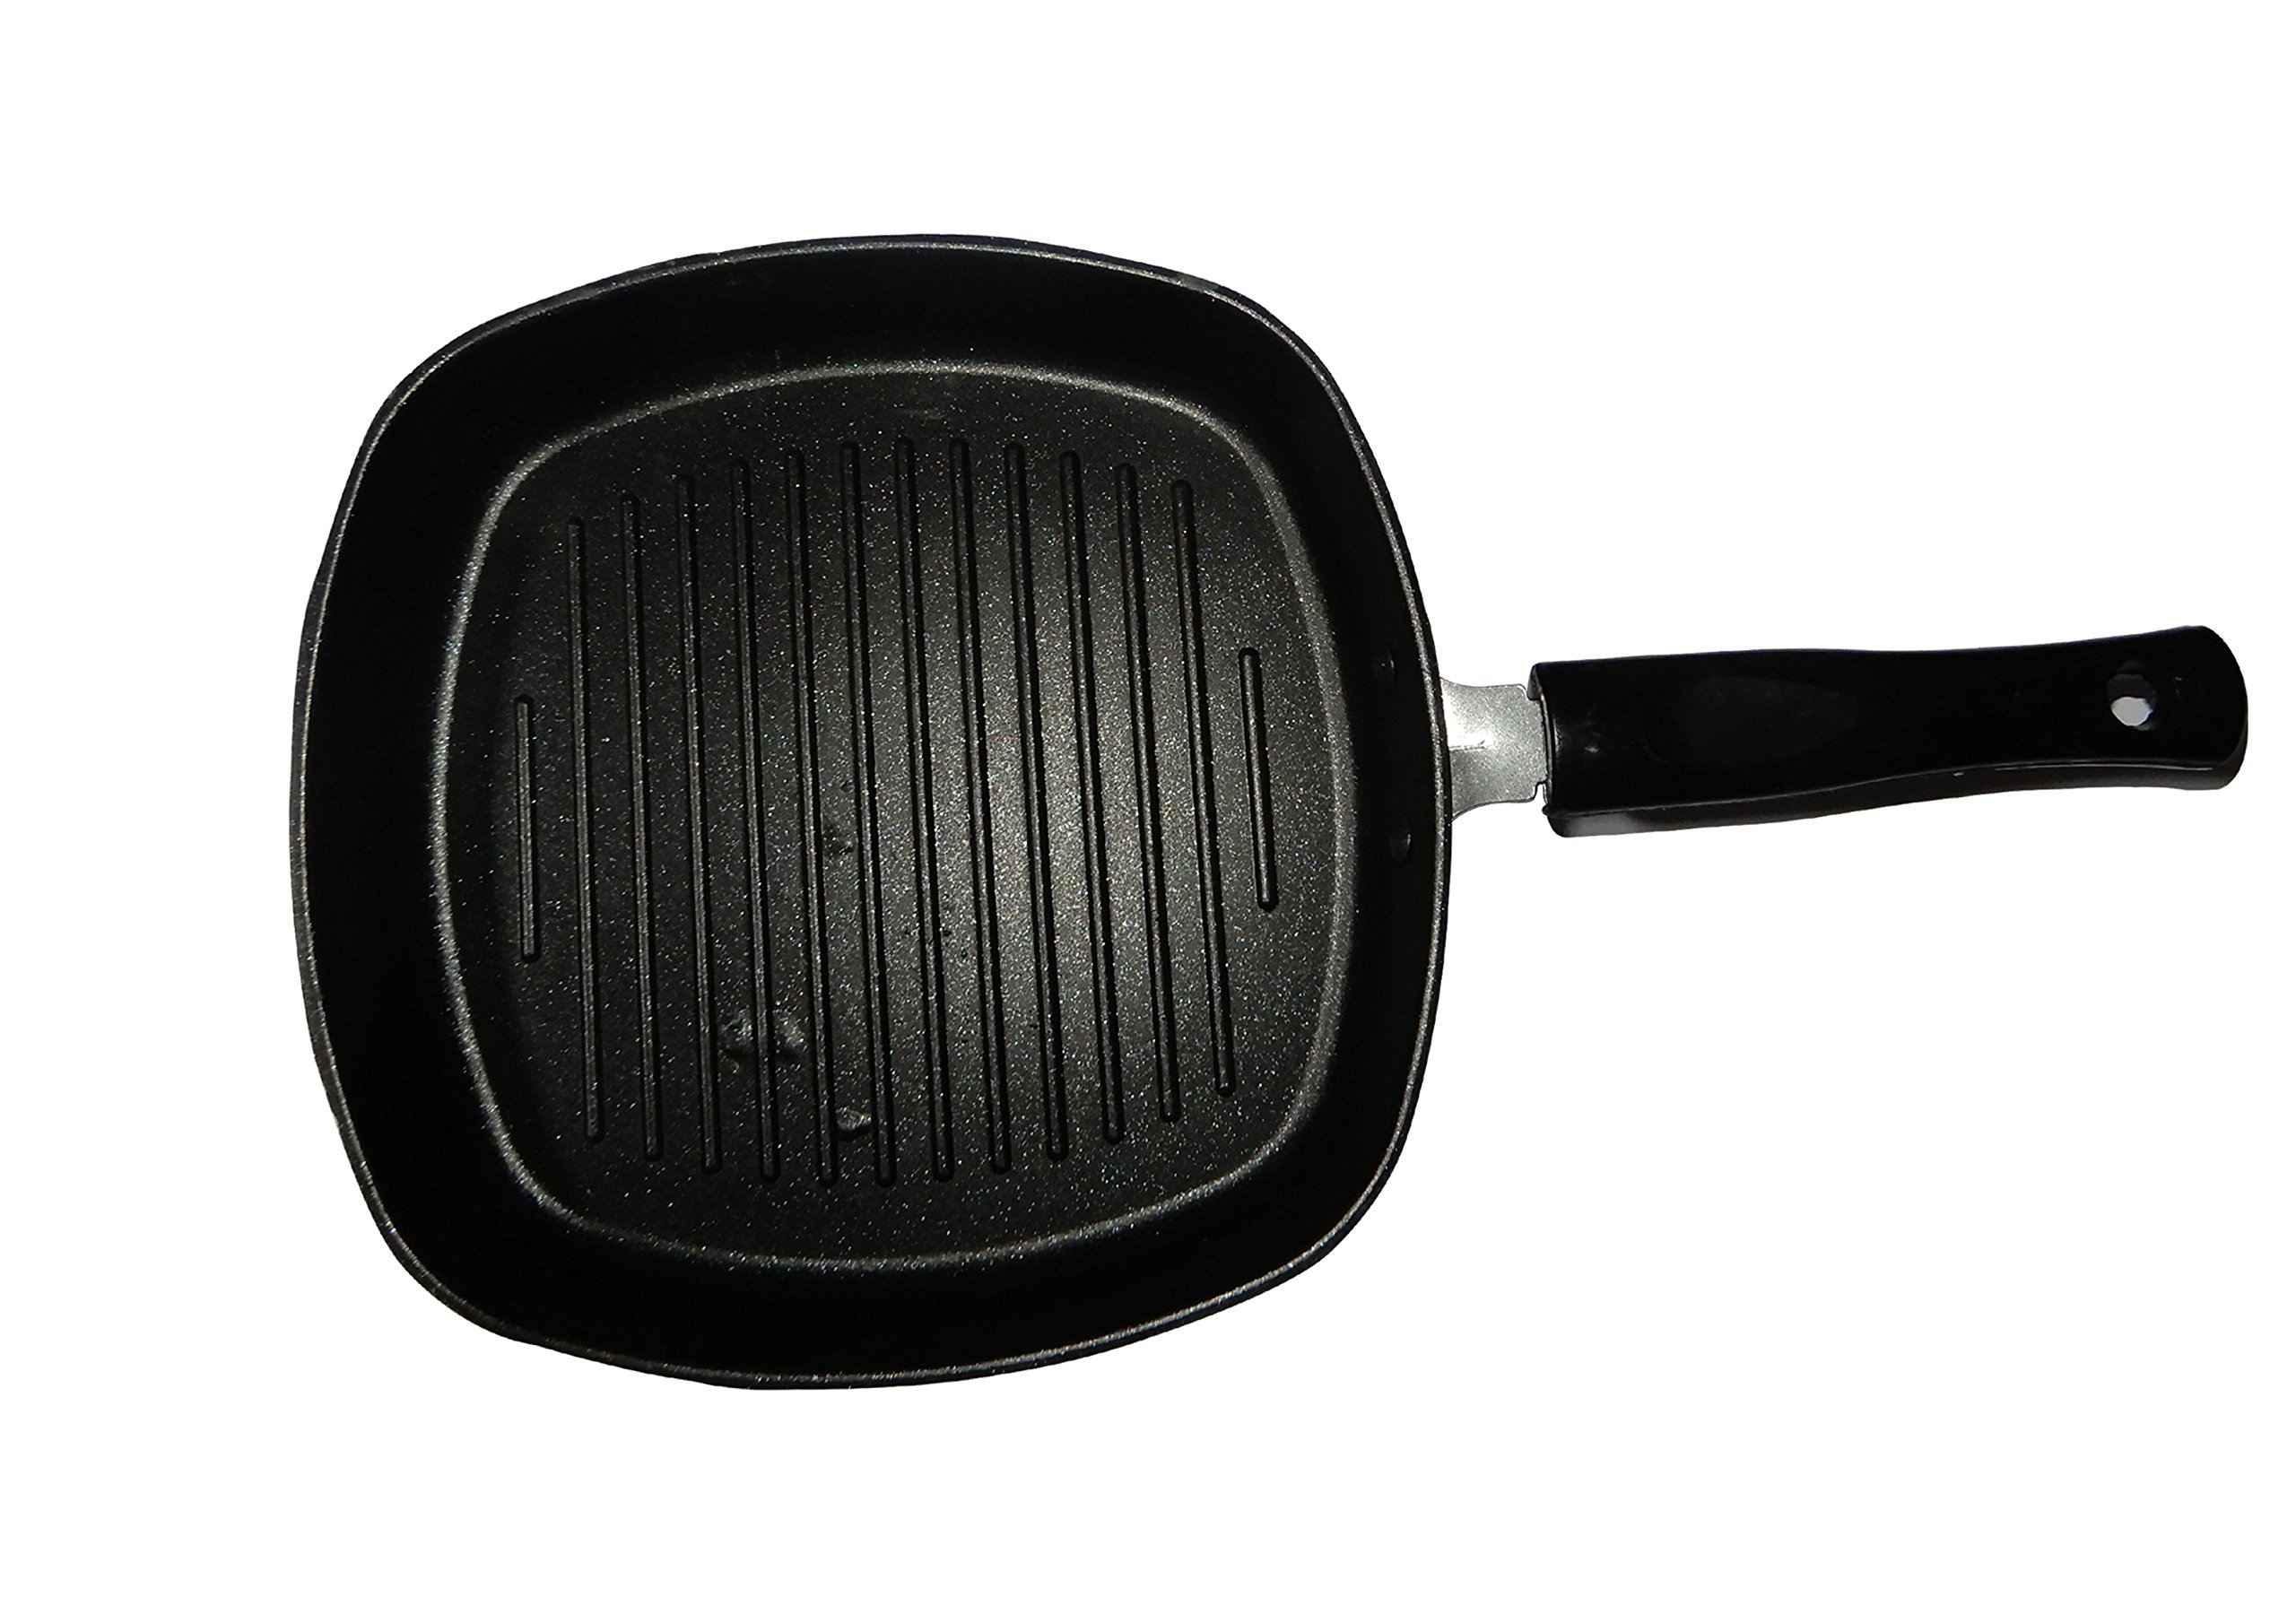 IndiaBigShop Easter Day To your Loved ones, Hard-Anodized Nonstick Deep Square Grill Pan, 9-Inch, With Black Handle, Easter Day/Mothers Day/Good Friday Gift